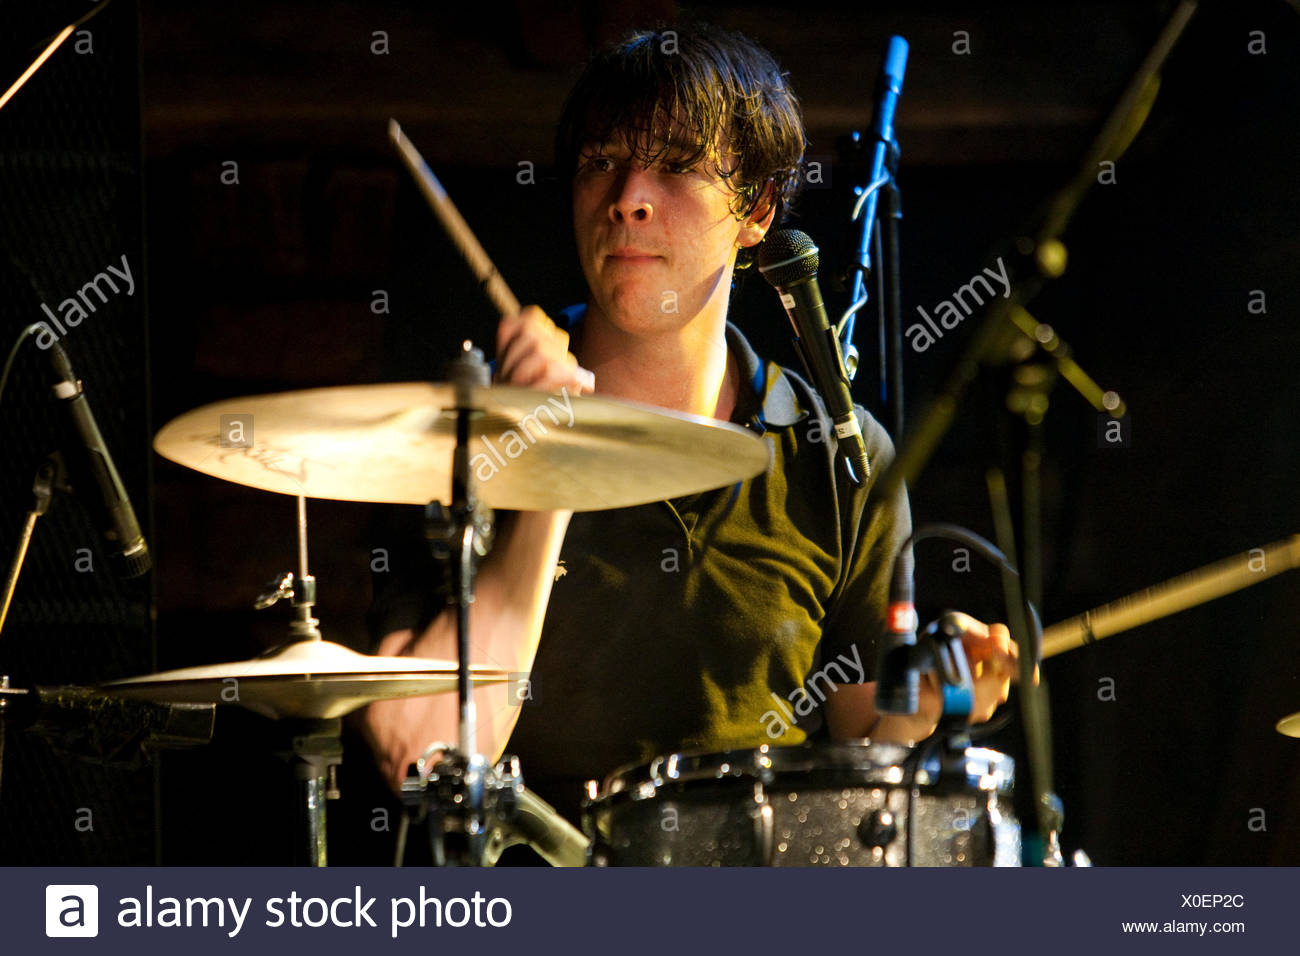 Drummer of the Belgian pop band The Pop live at the Schueuer venue, Lucerne, Switzerland - Stock Image